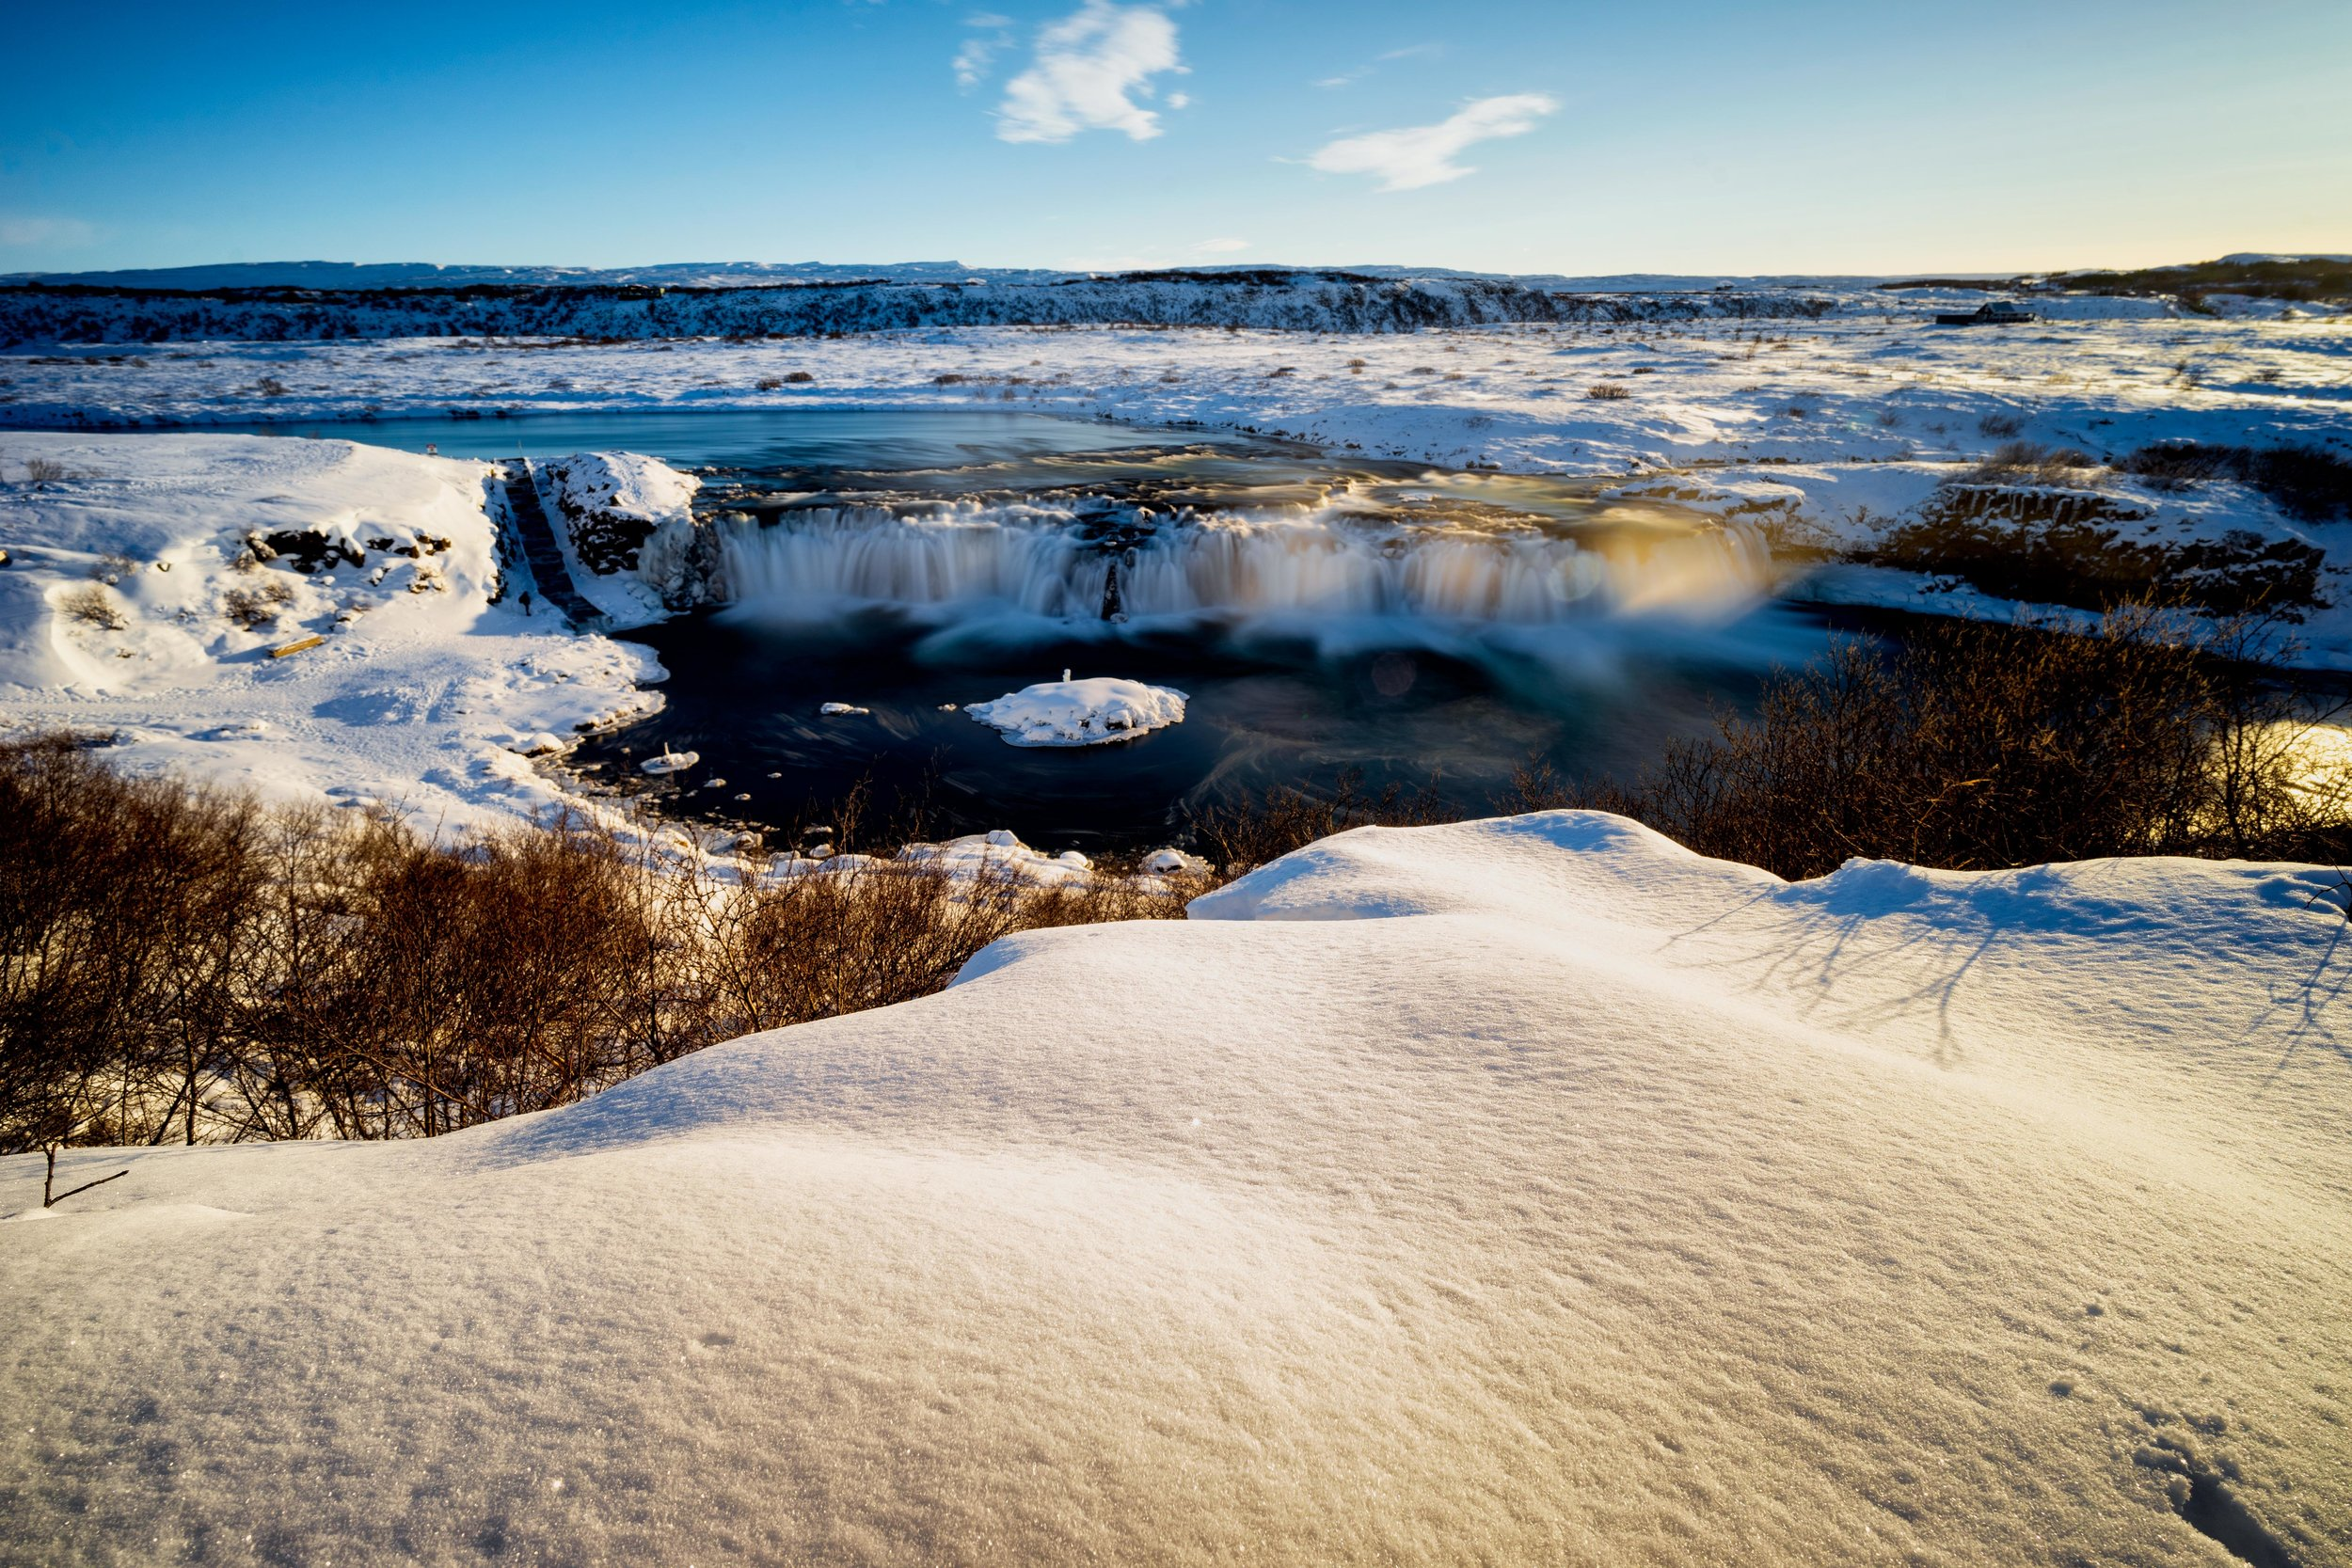 Iceland. snow. travel. adventure. photography. trip. epic landscape. snow. cold. freezing. sunrise. looking over faxifoss.jpg